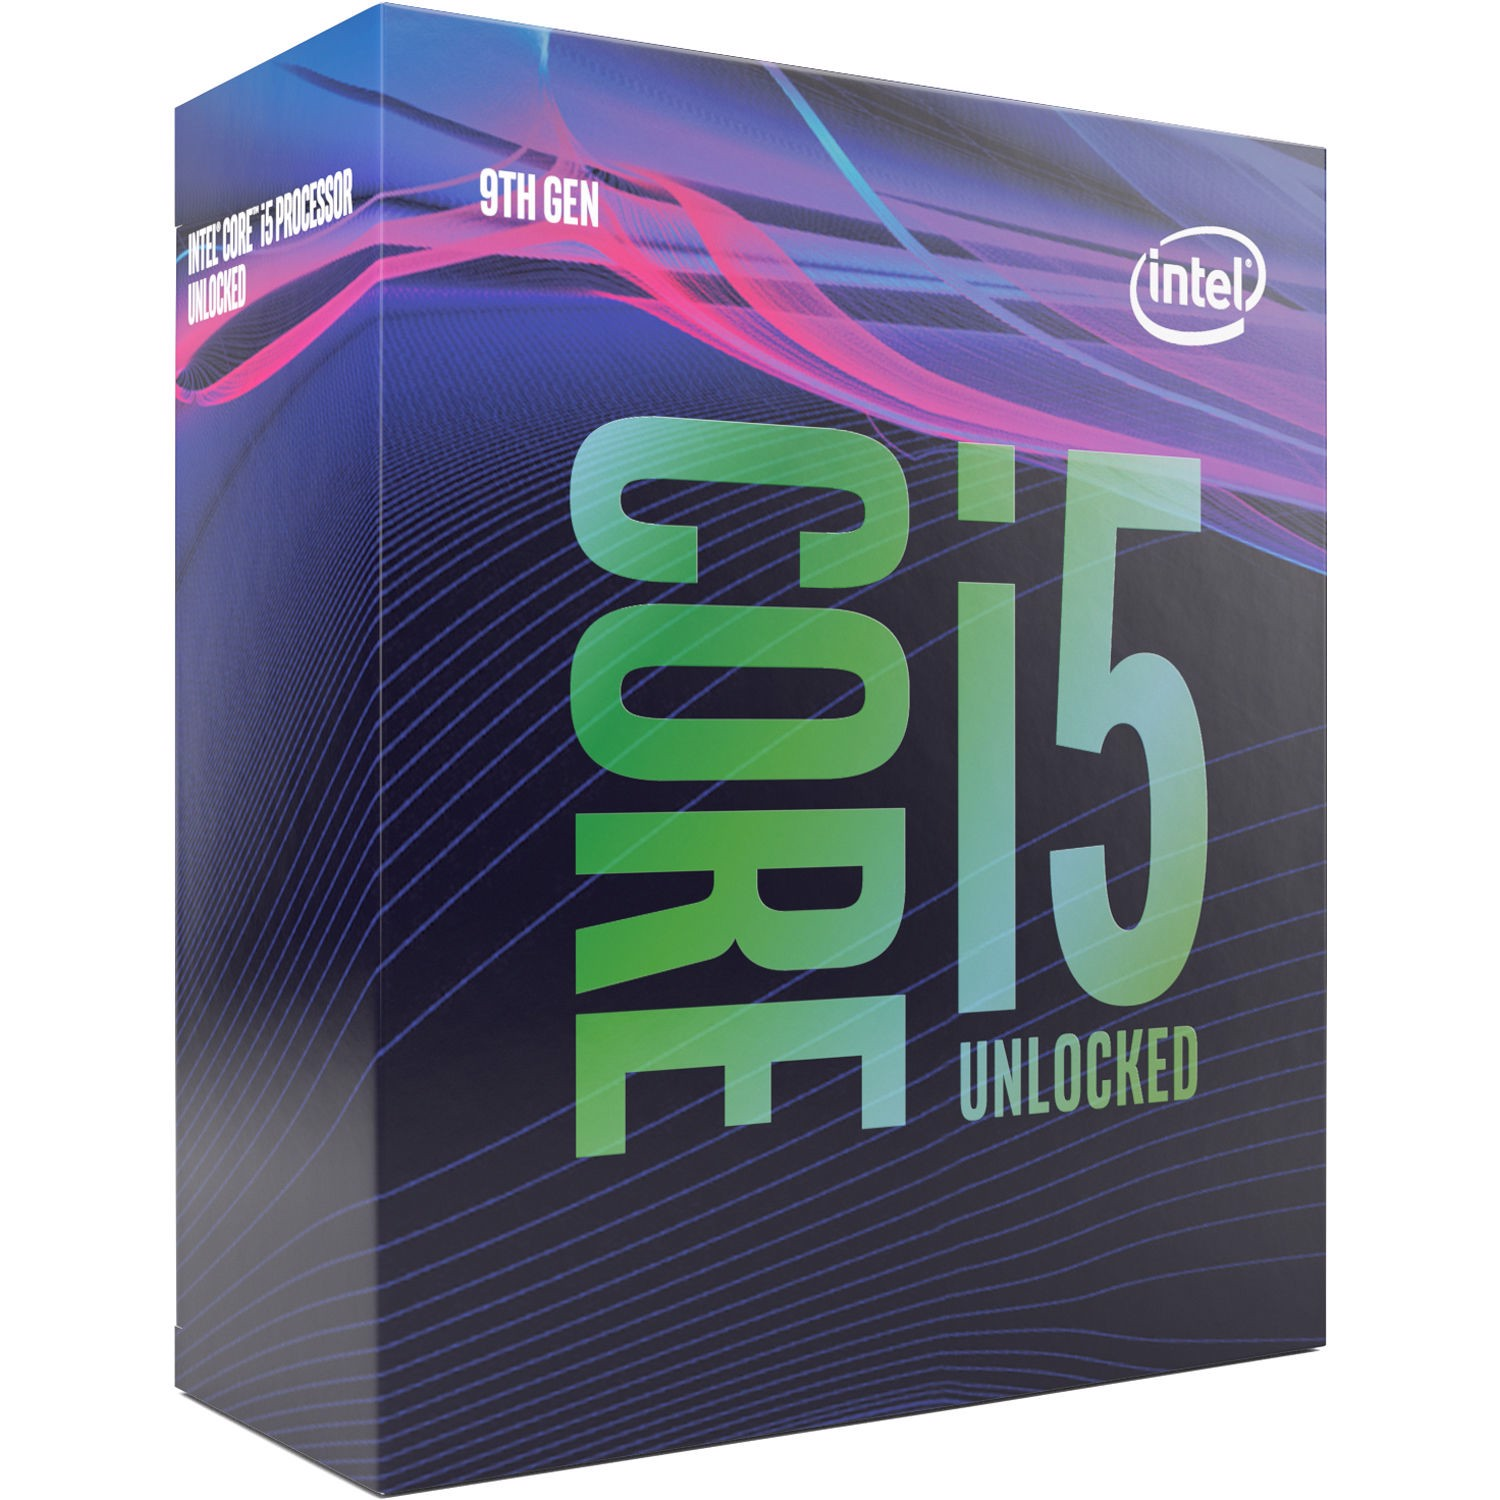 Core i5-9600K 9MB 6C/6T 3.7-4.6GHz - Socket 1151v2 Coffee Lake